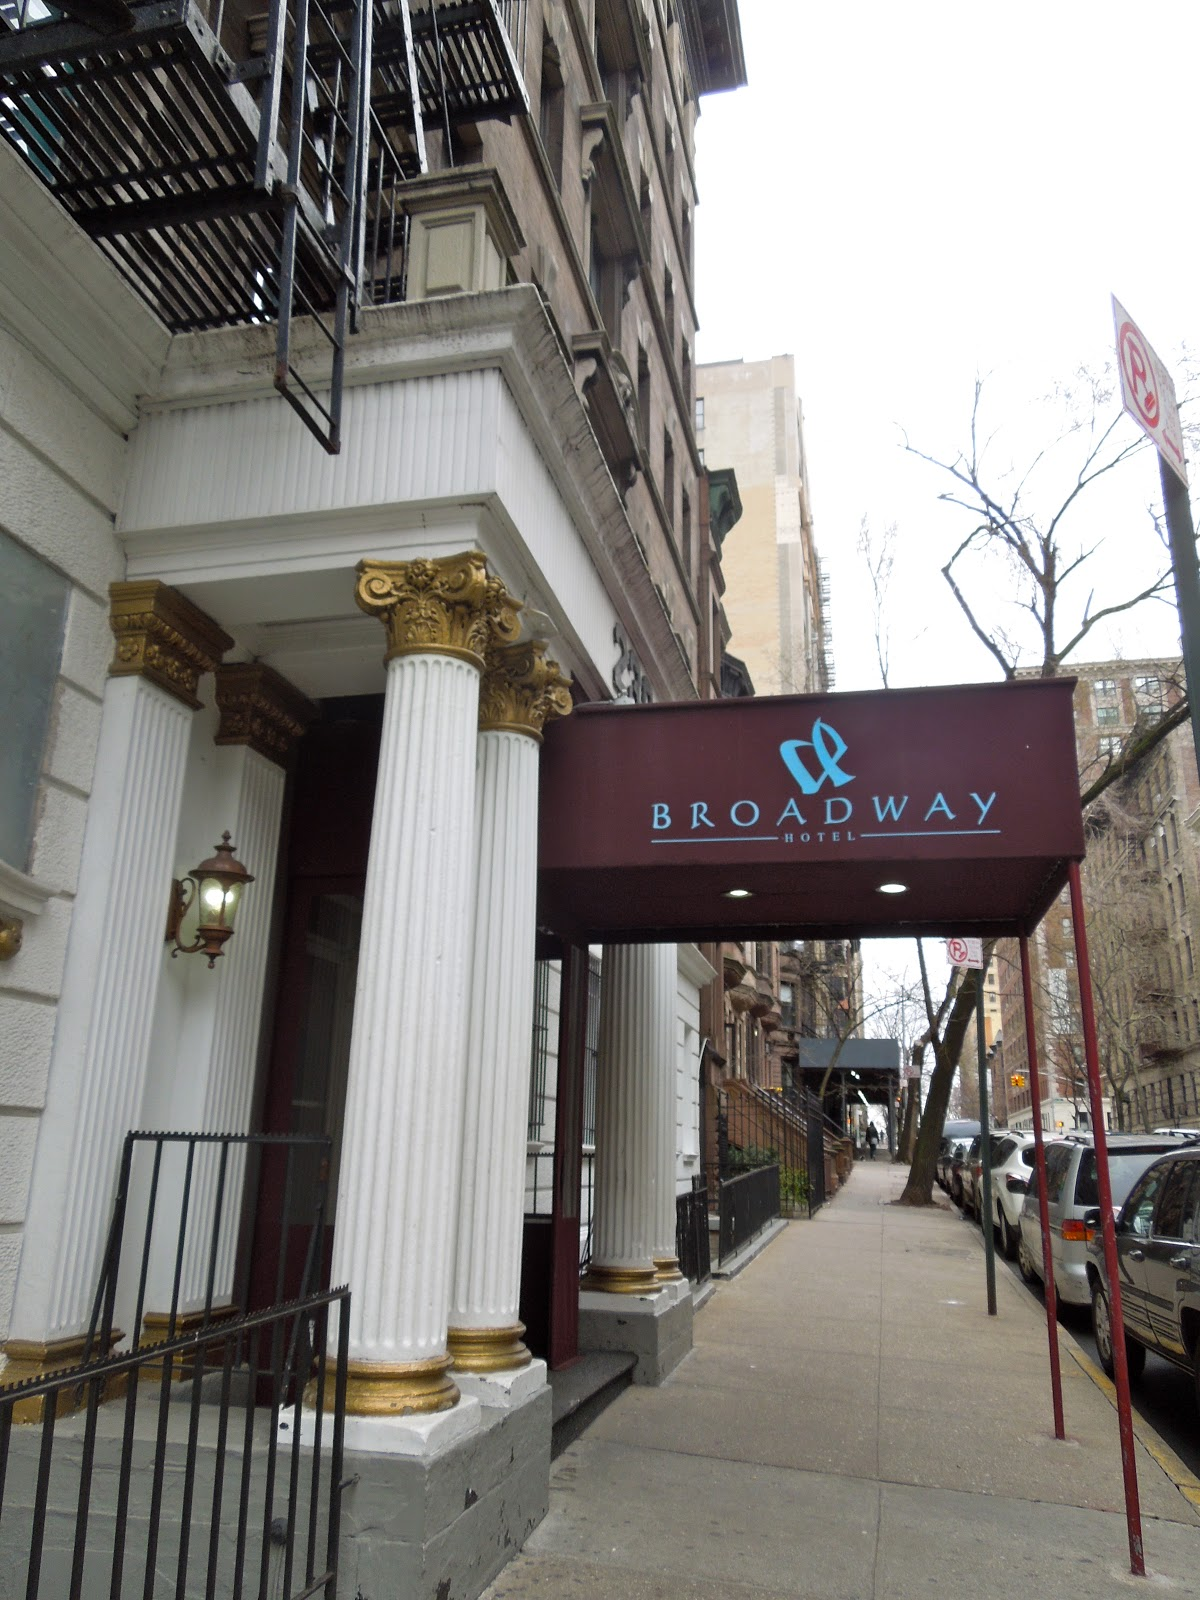 To Europe With Kids: Review of the Broadway Hotel and Hostel in NYC